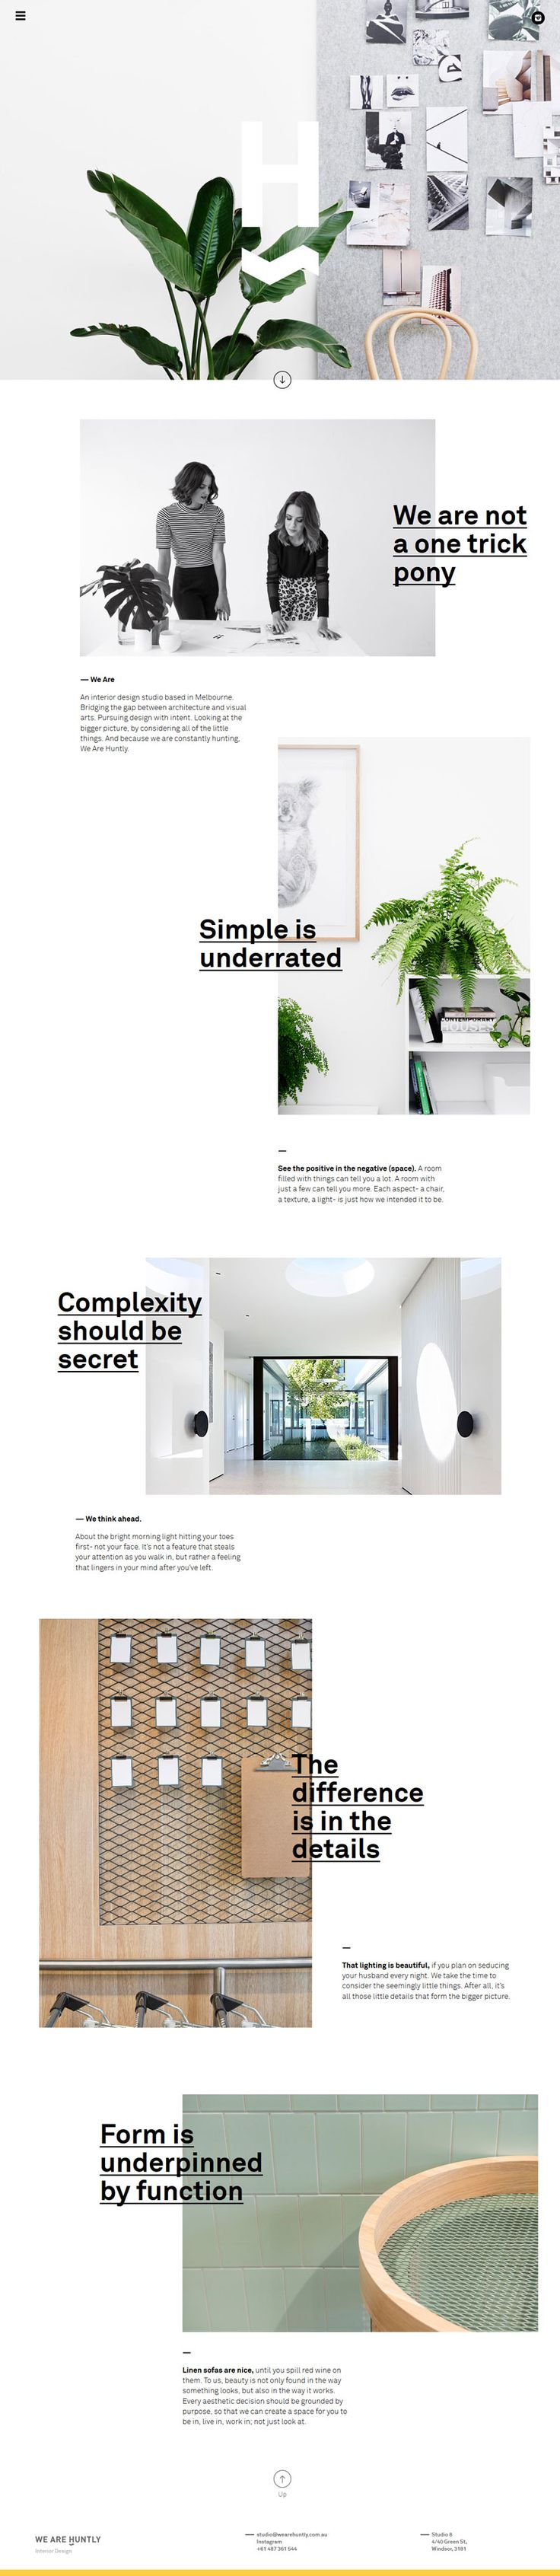 Huntly - Minimal Creative Design